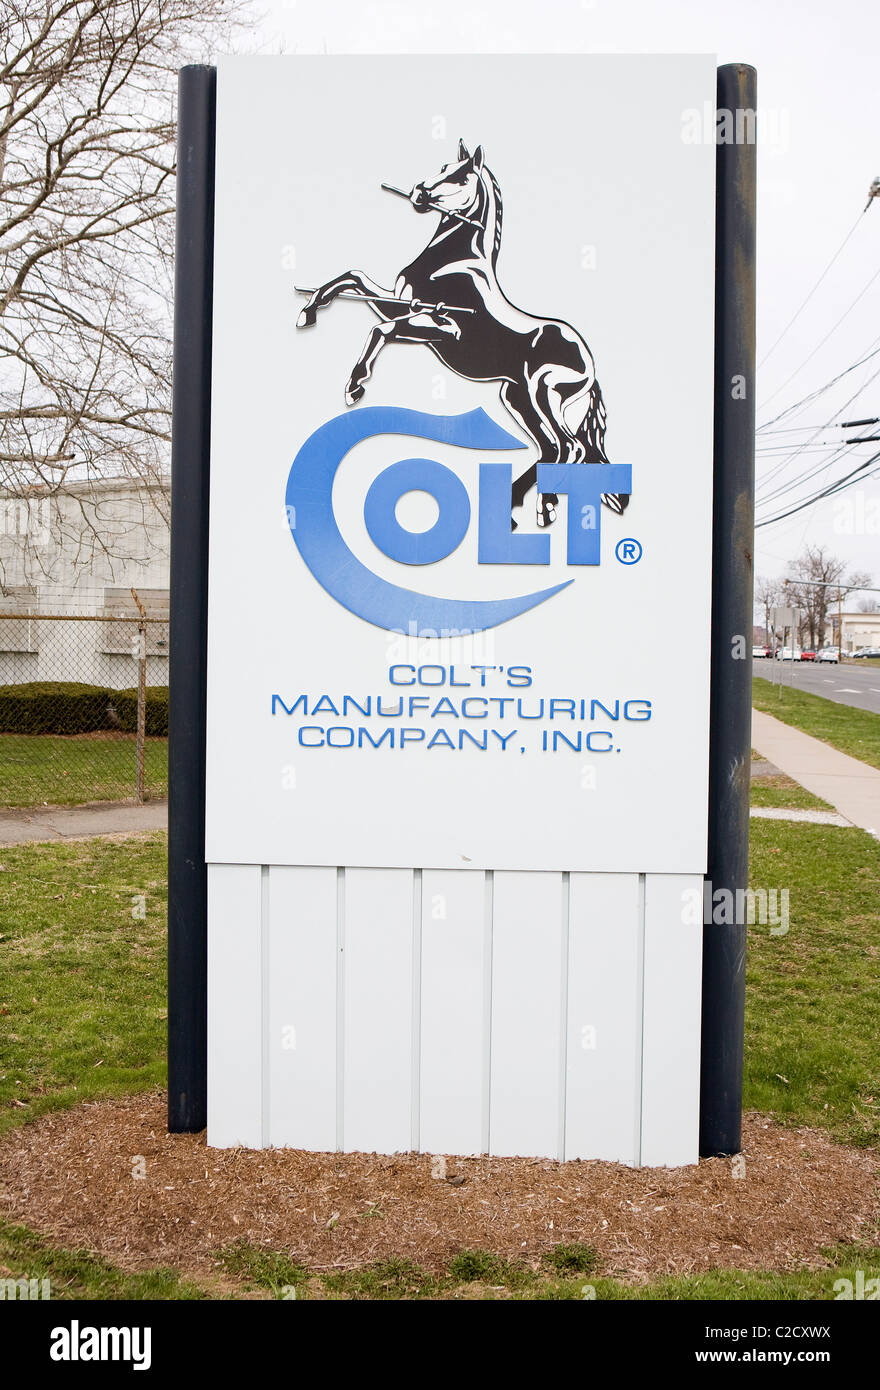 The World Headquarters of gun and firearms maker Colt.  - Stock Image